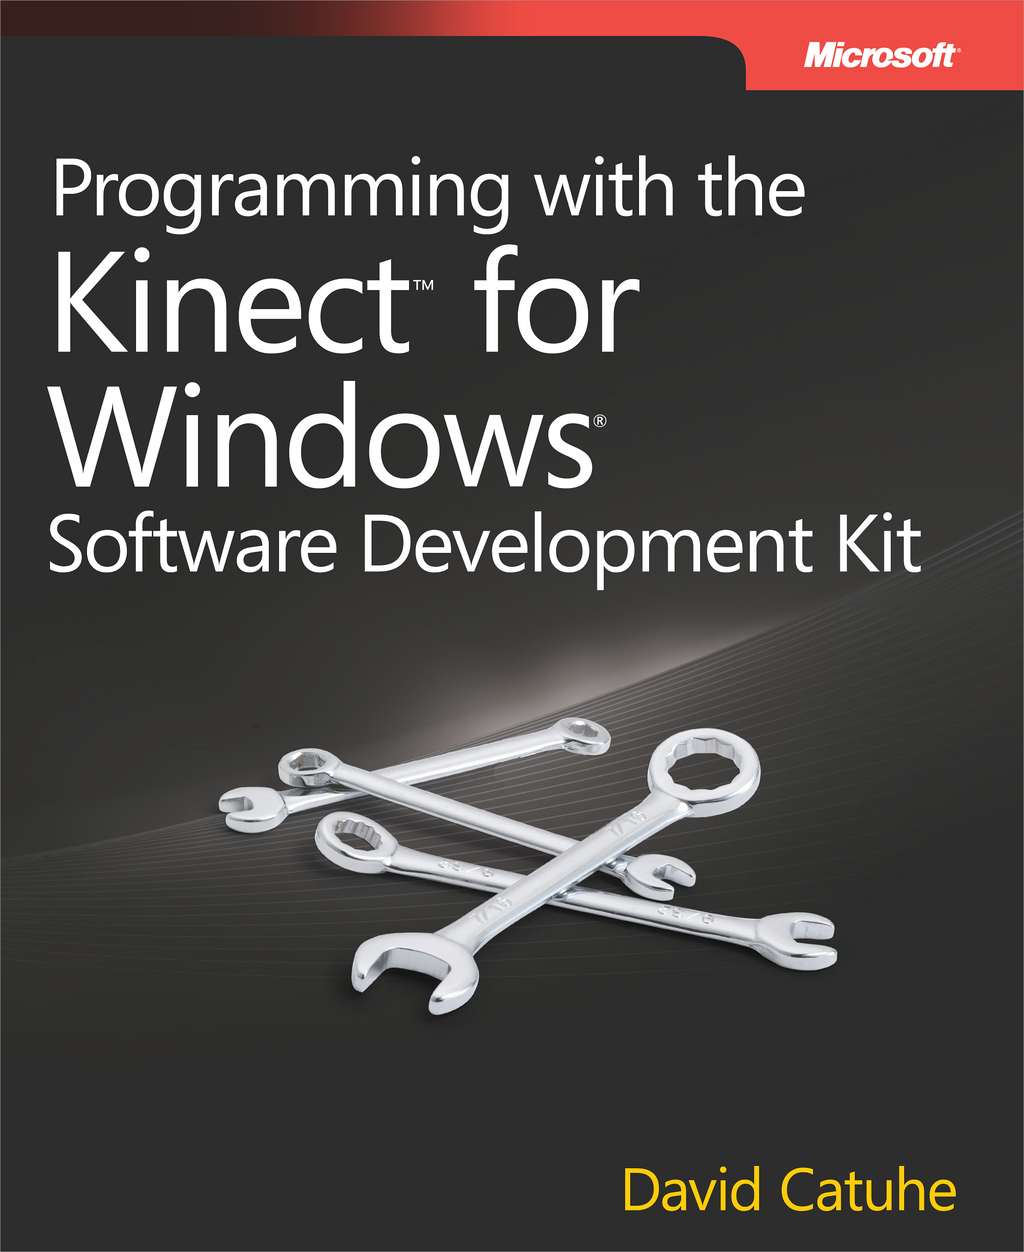 Programming with the Kinect for Windows Software Development Kit By: David Catuhe